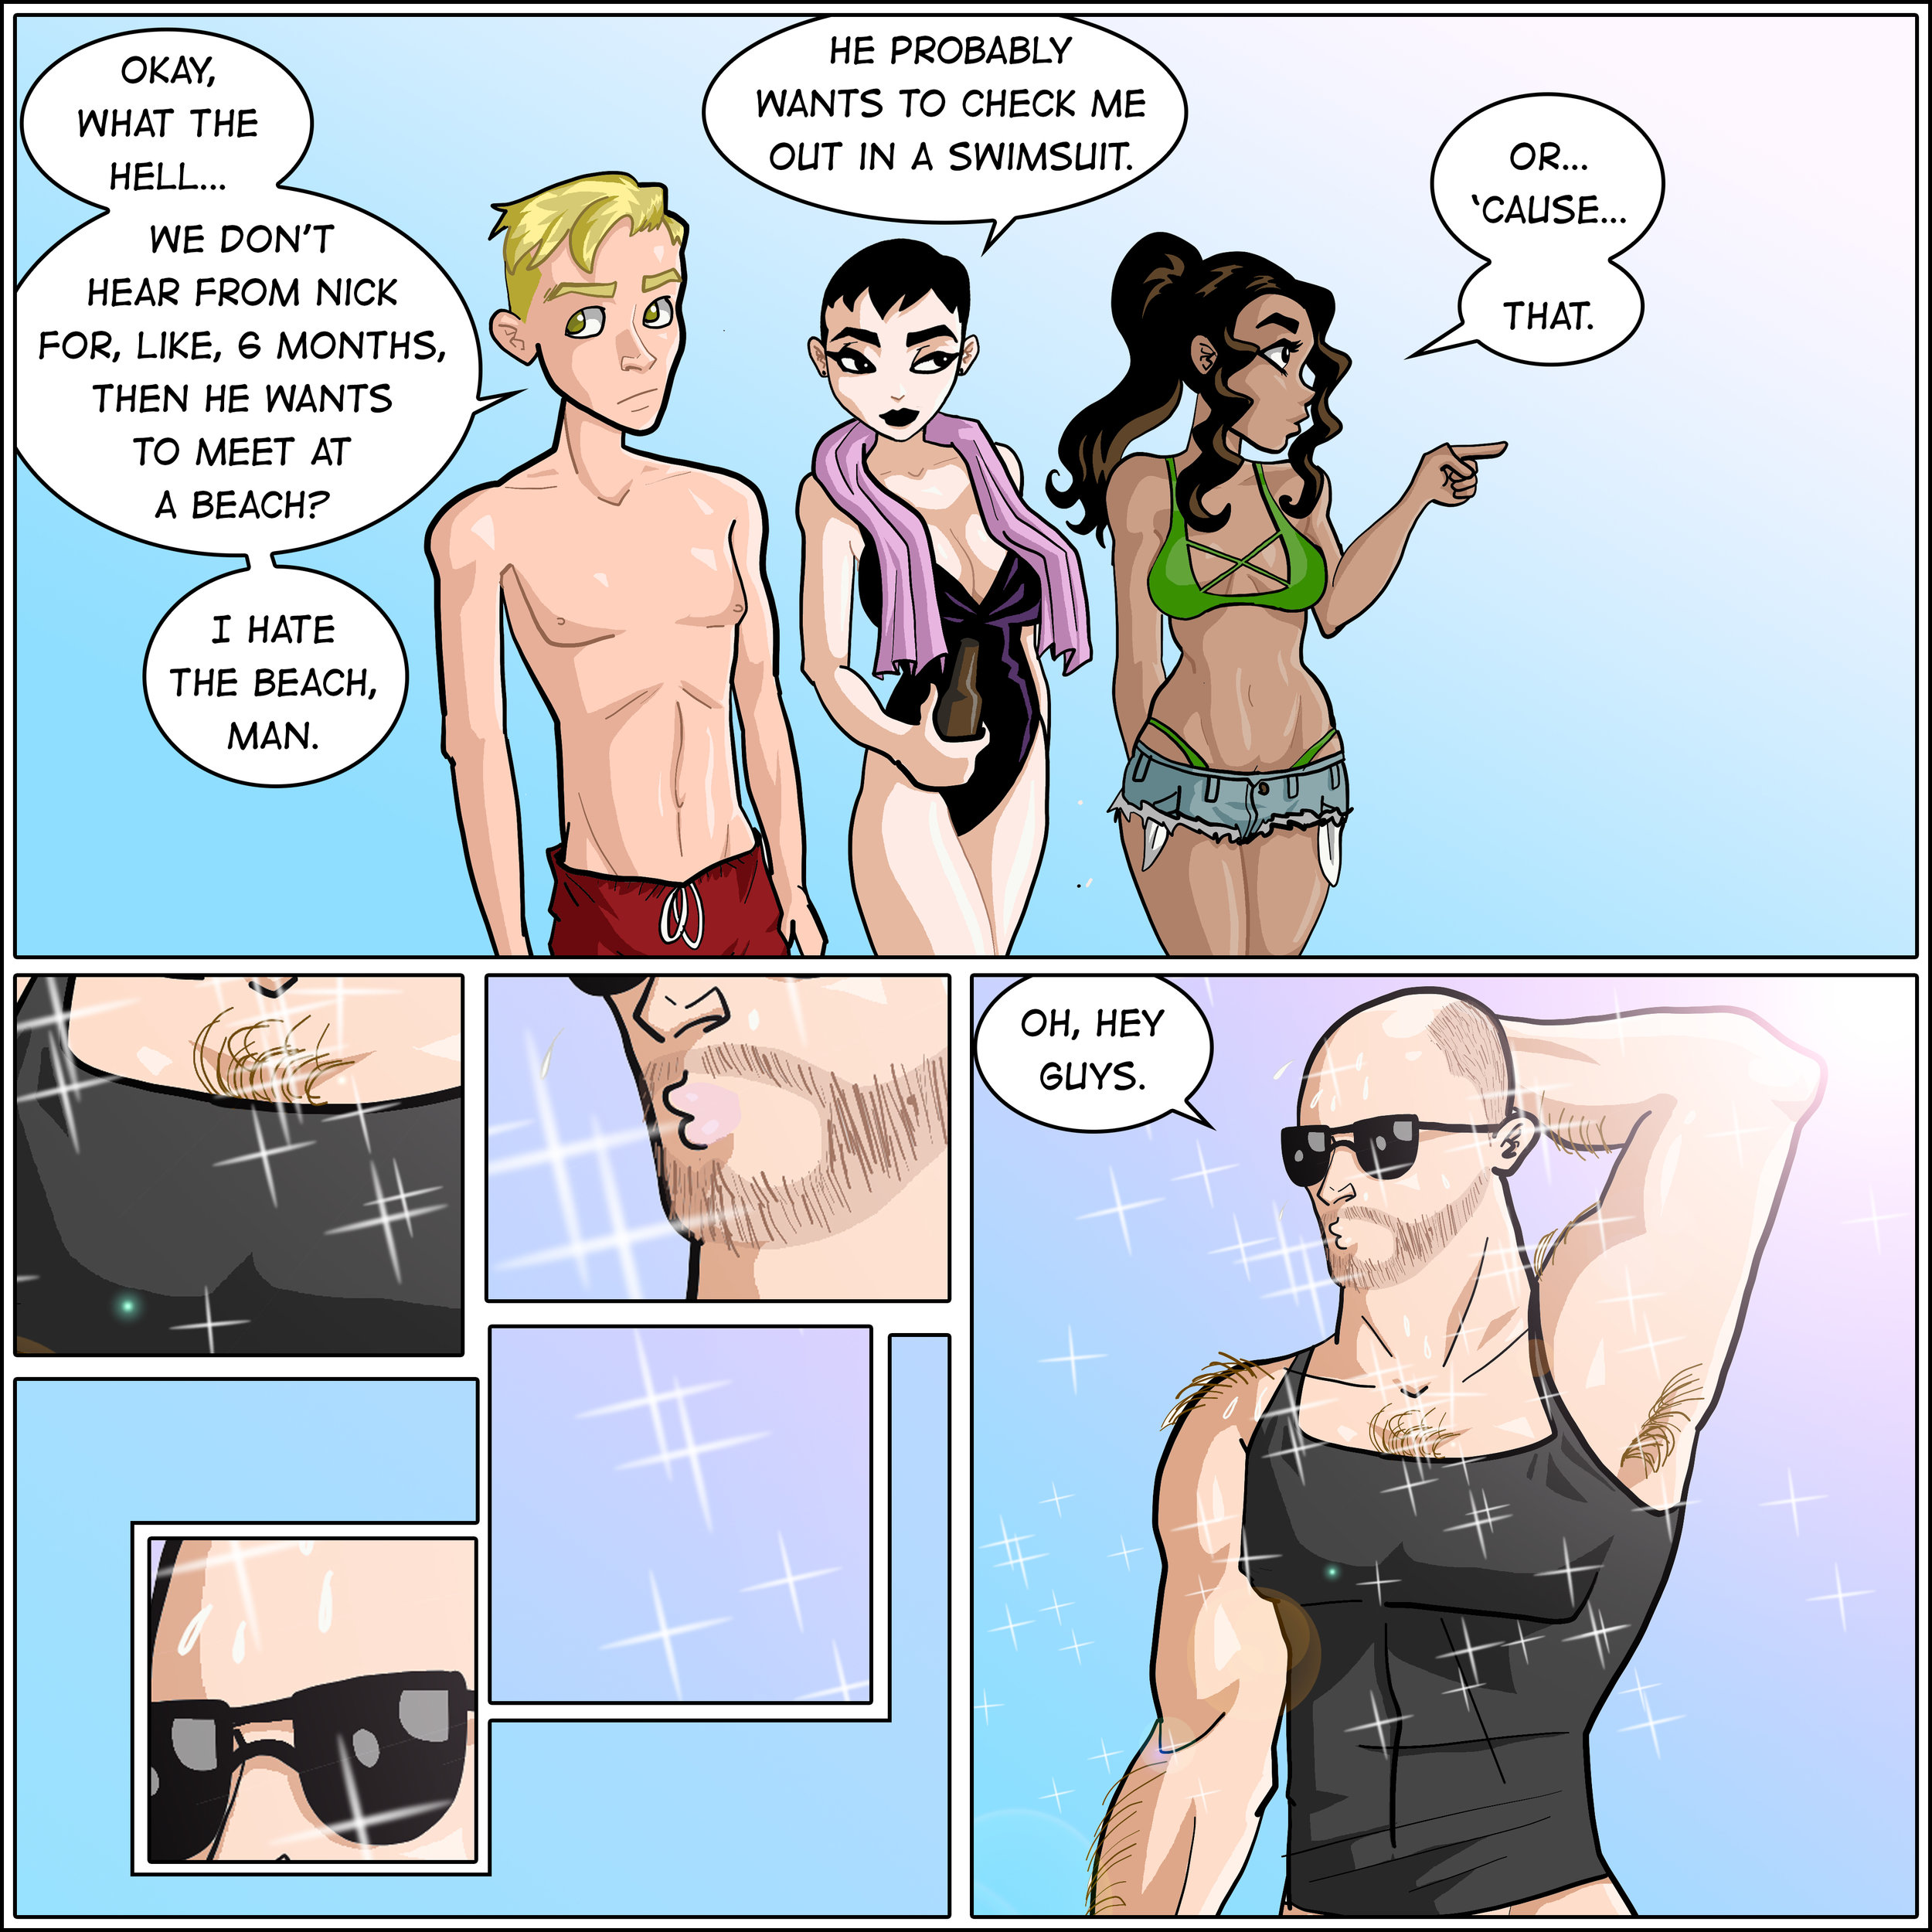 "This isn't some lazy homophobic joke, I was going for like, a stereotypical dazzling transformation, and got worried it would be misinterpreted, because the world is so goddamn awful and bigoted. - The joke is, Nick used to be shlubby. Now he's fit. This all started when I recently found an old sketch of him all buff helpfully labeled ""Fit Nick,"" which I found really funny, and was looking for how to reintroduce him to the strip."